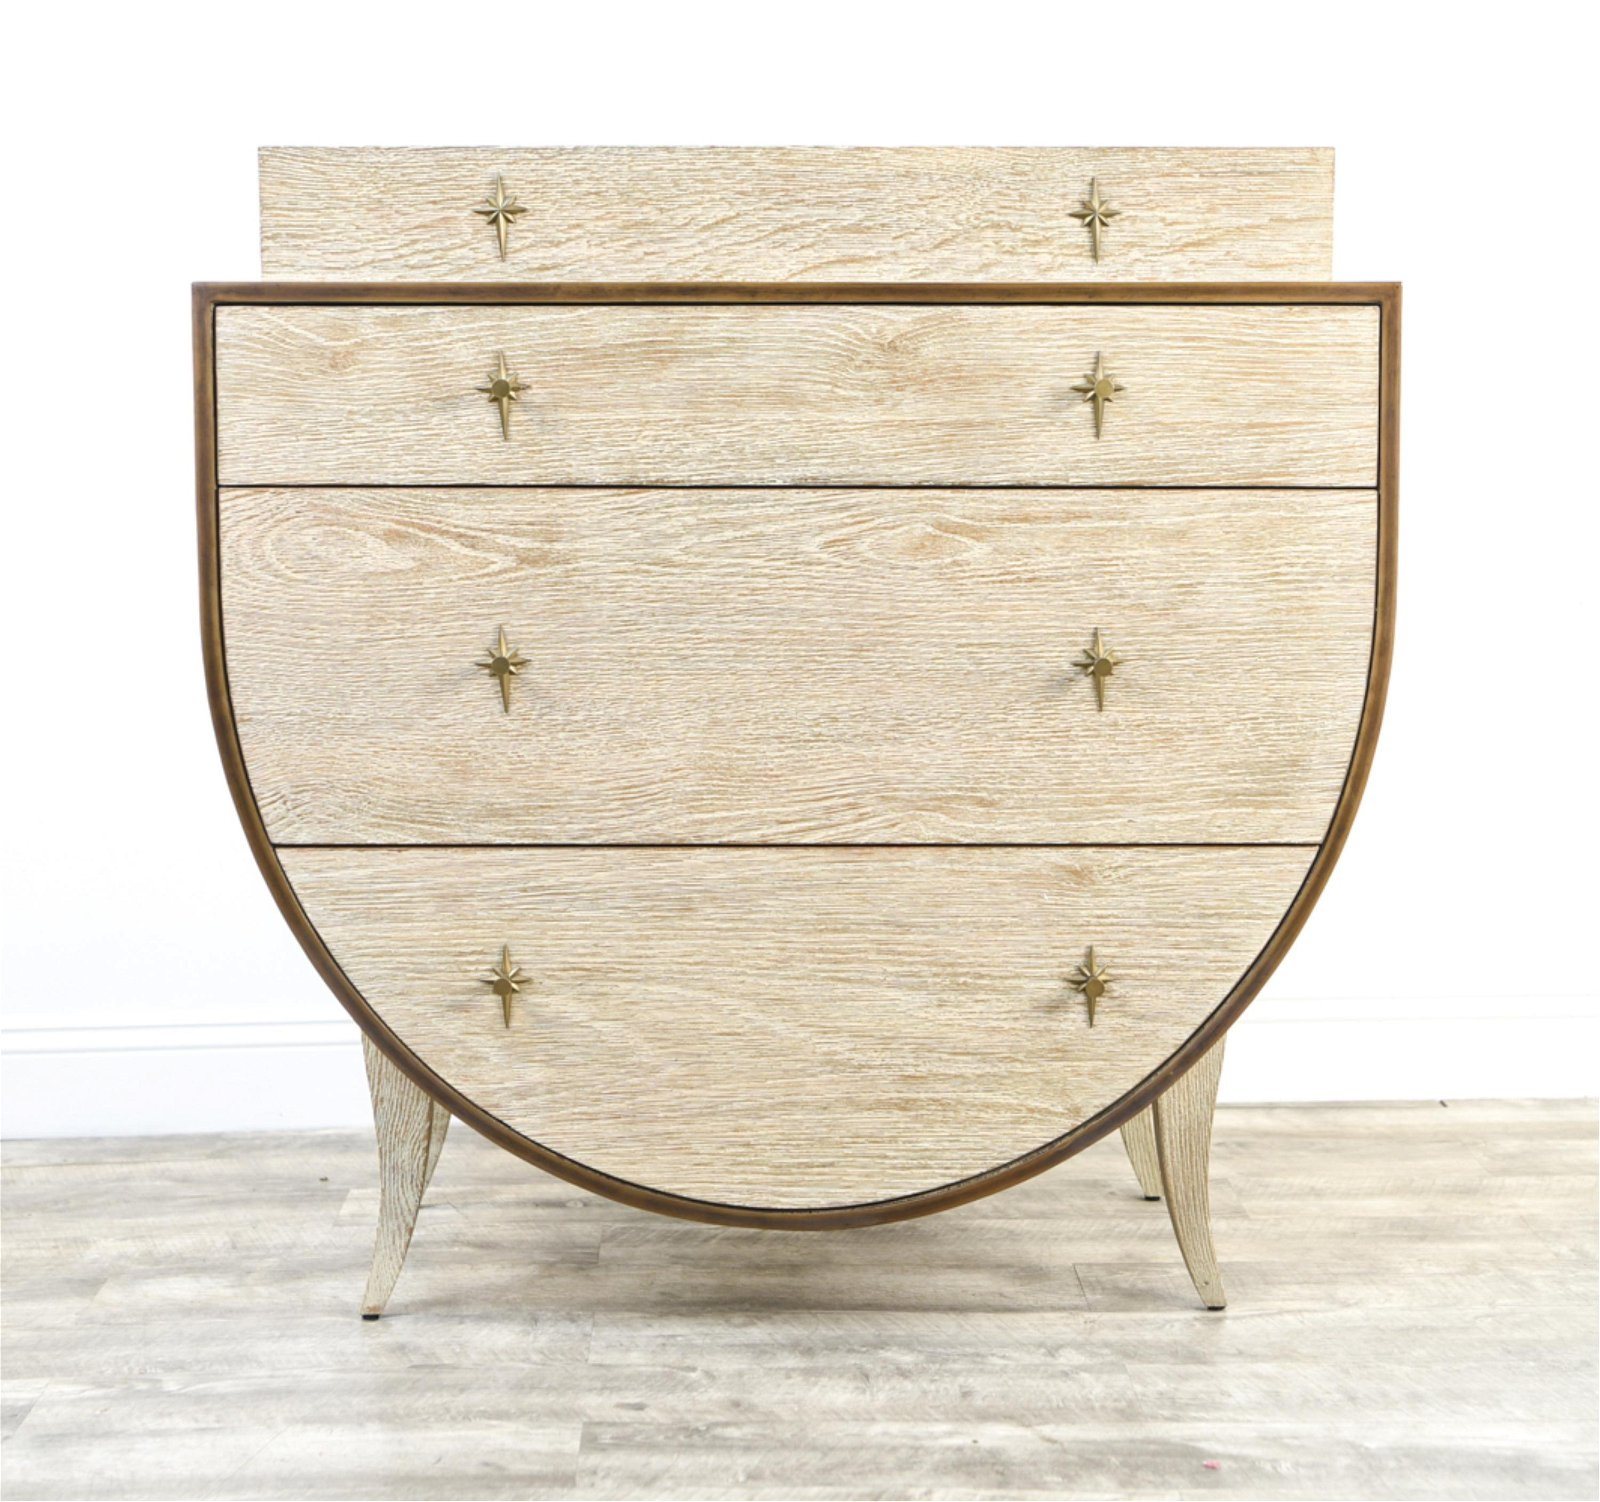 CERUSED OAK CHEST OF DRAWERS